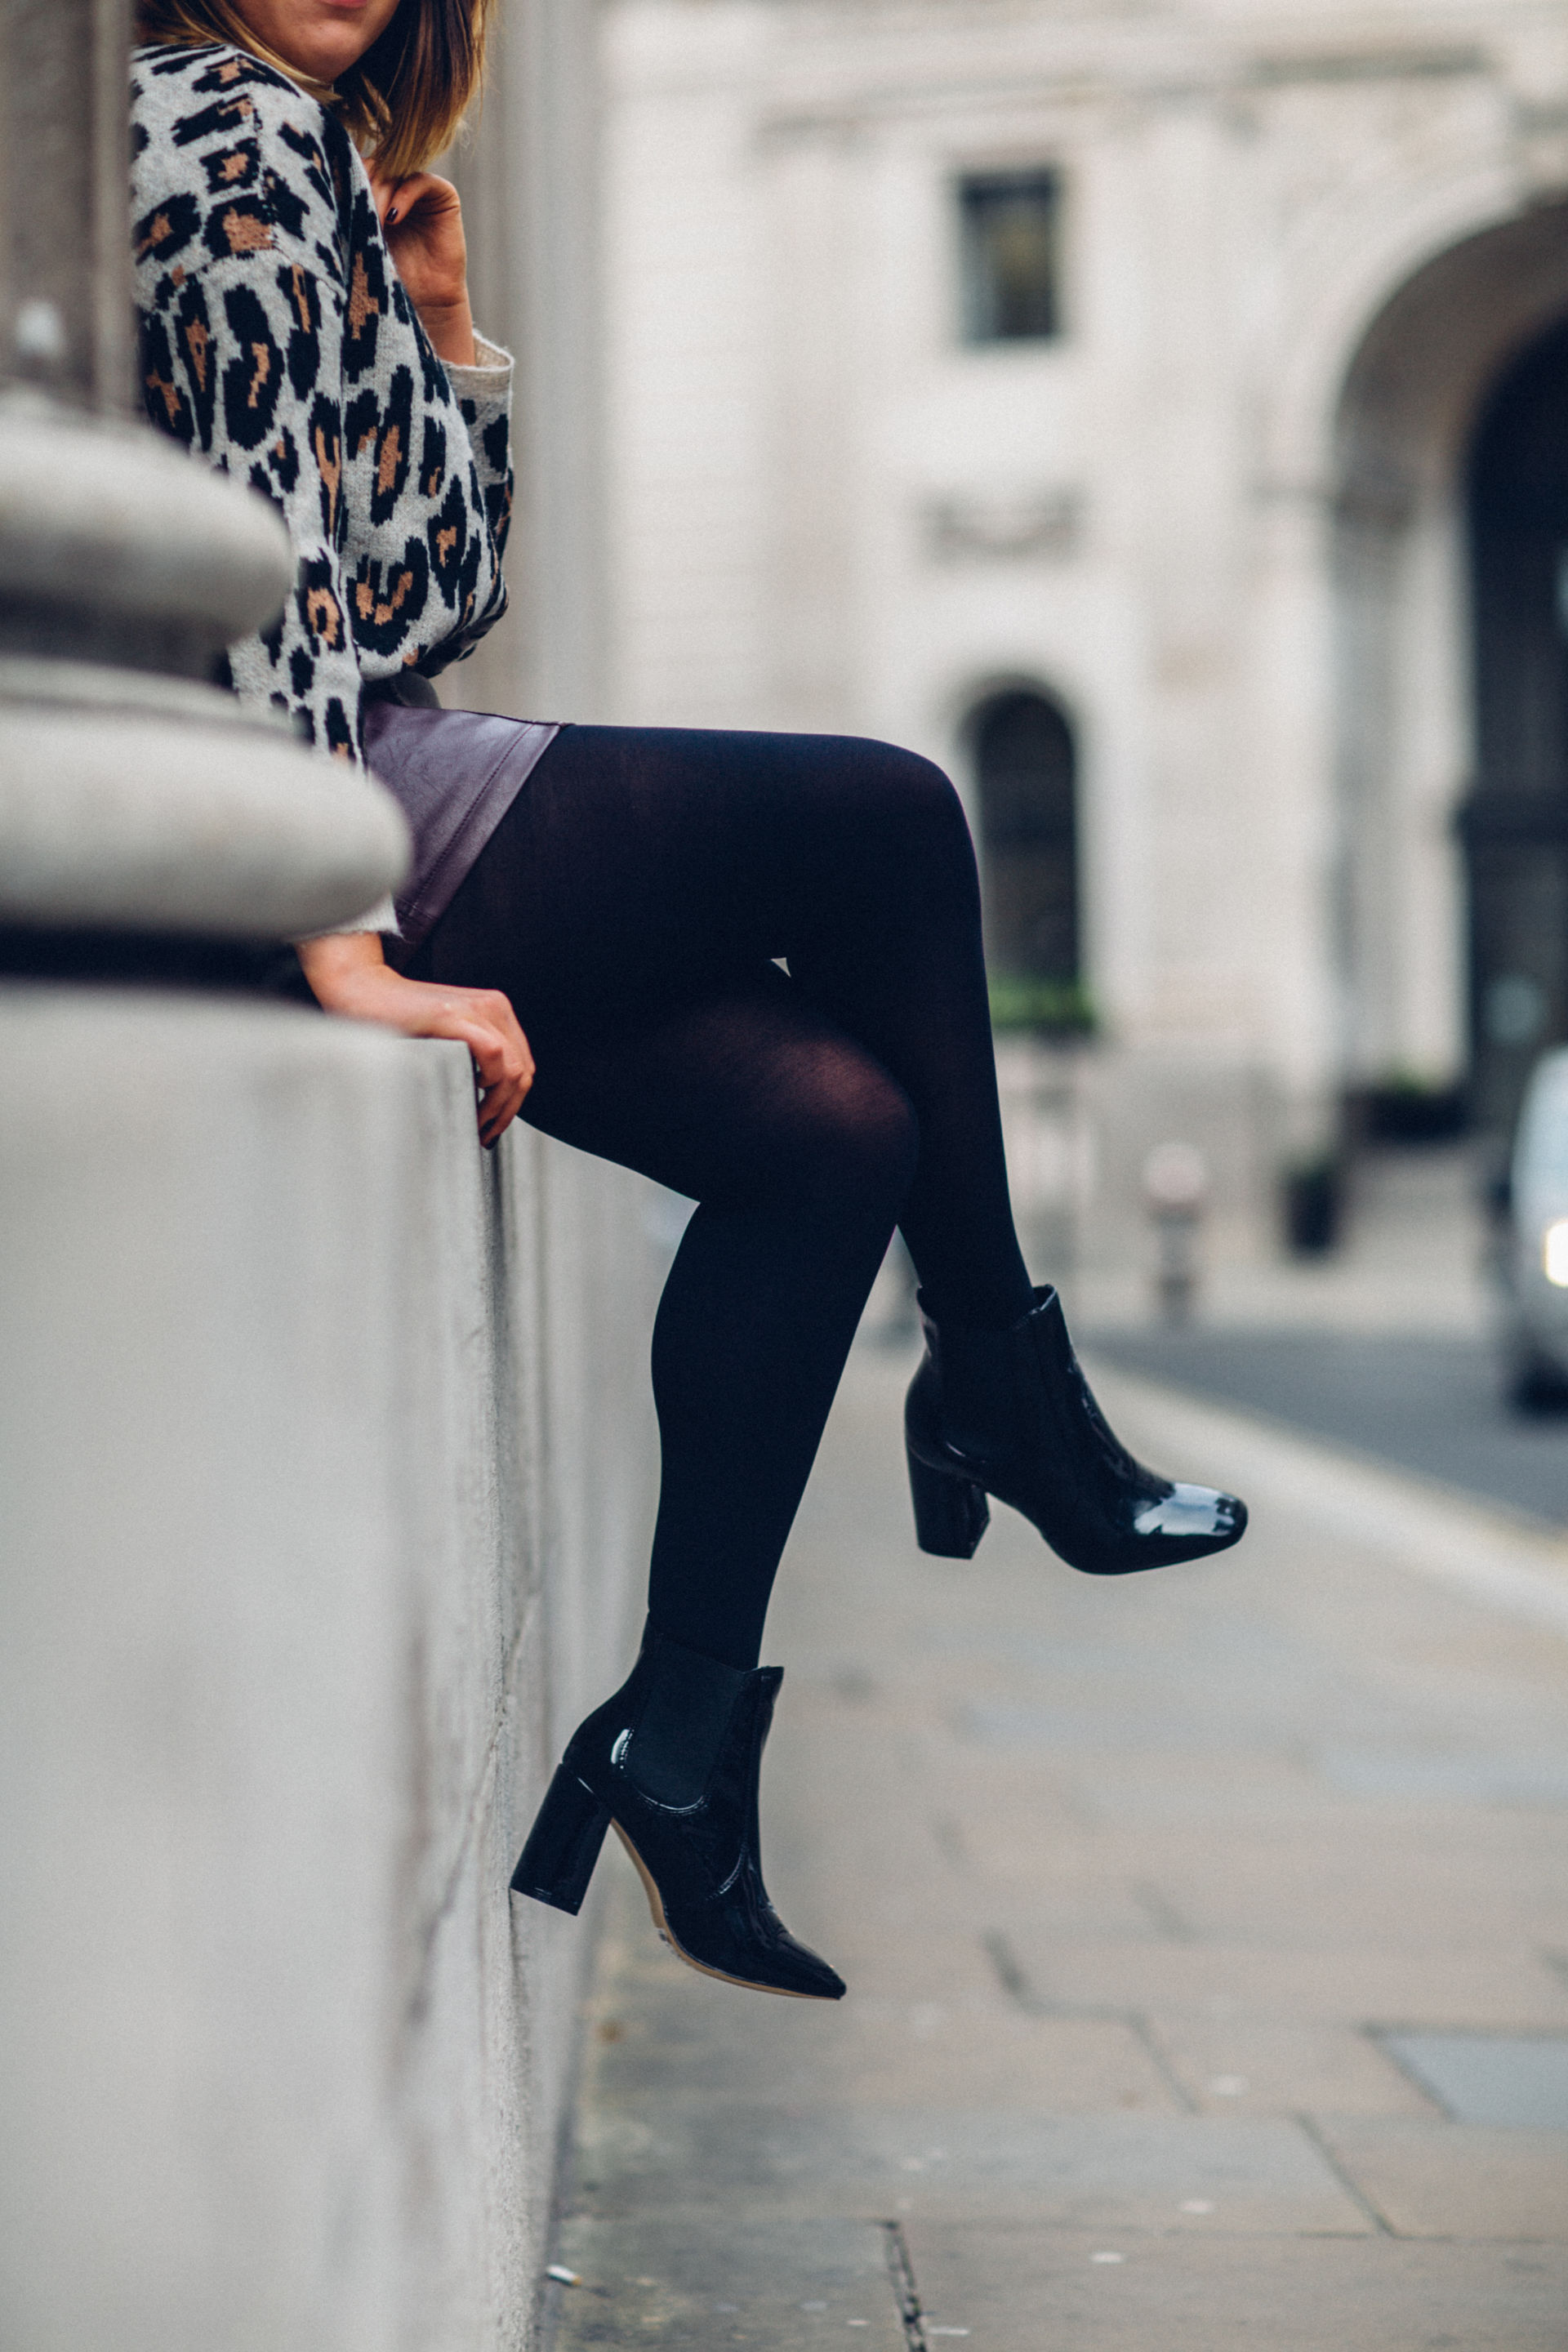 hayley-frock-me-im-famous-tights-final-edits-20-of-39